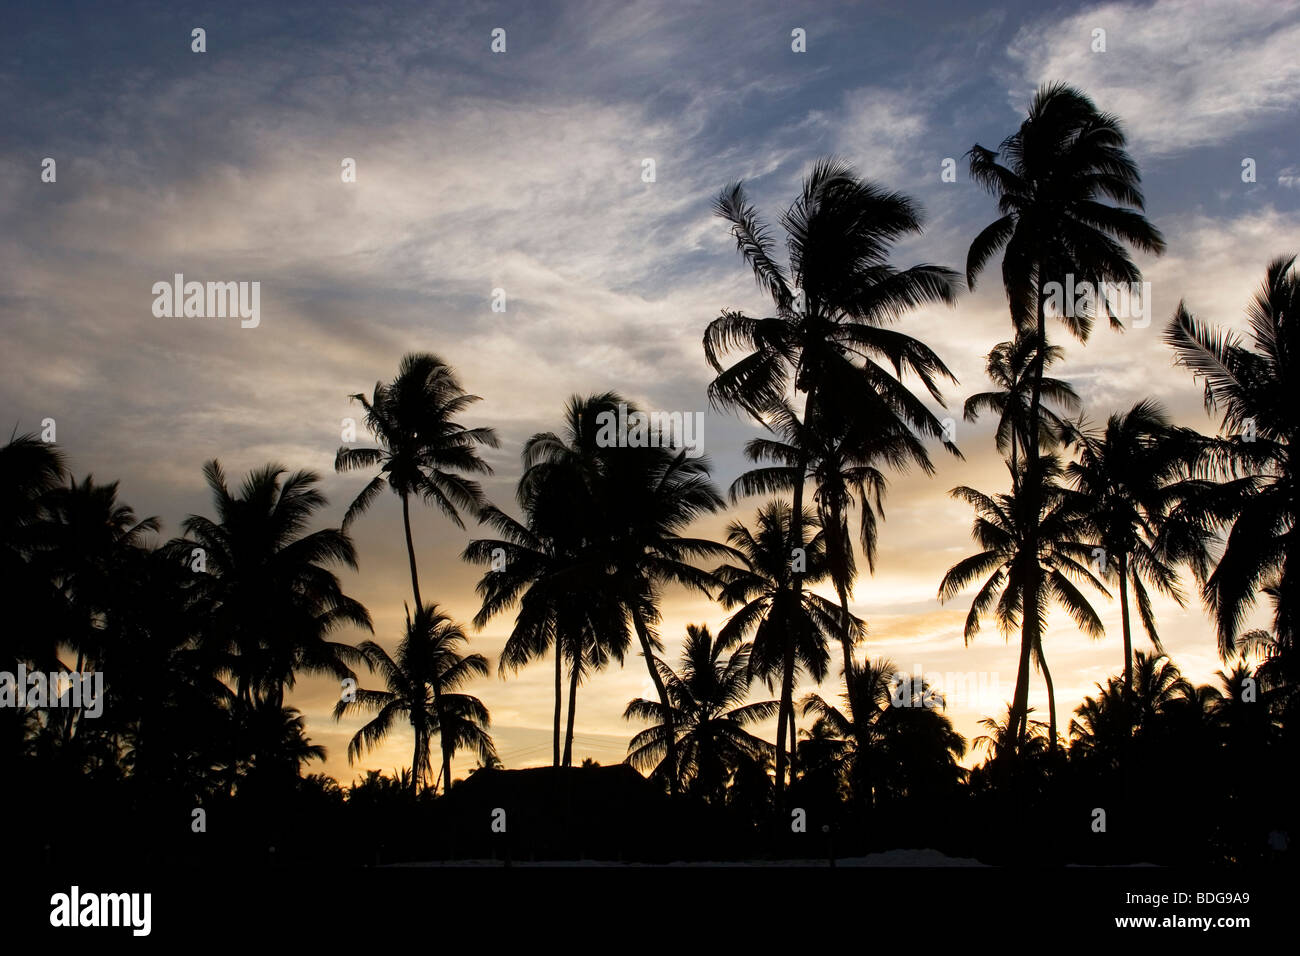 Sunset silhouette of palm trees which line the whole island, including here at Paje. Zanzibar, Tanzania. - Stock Image